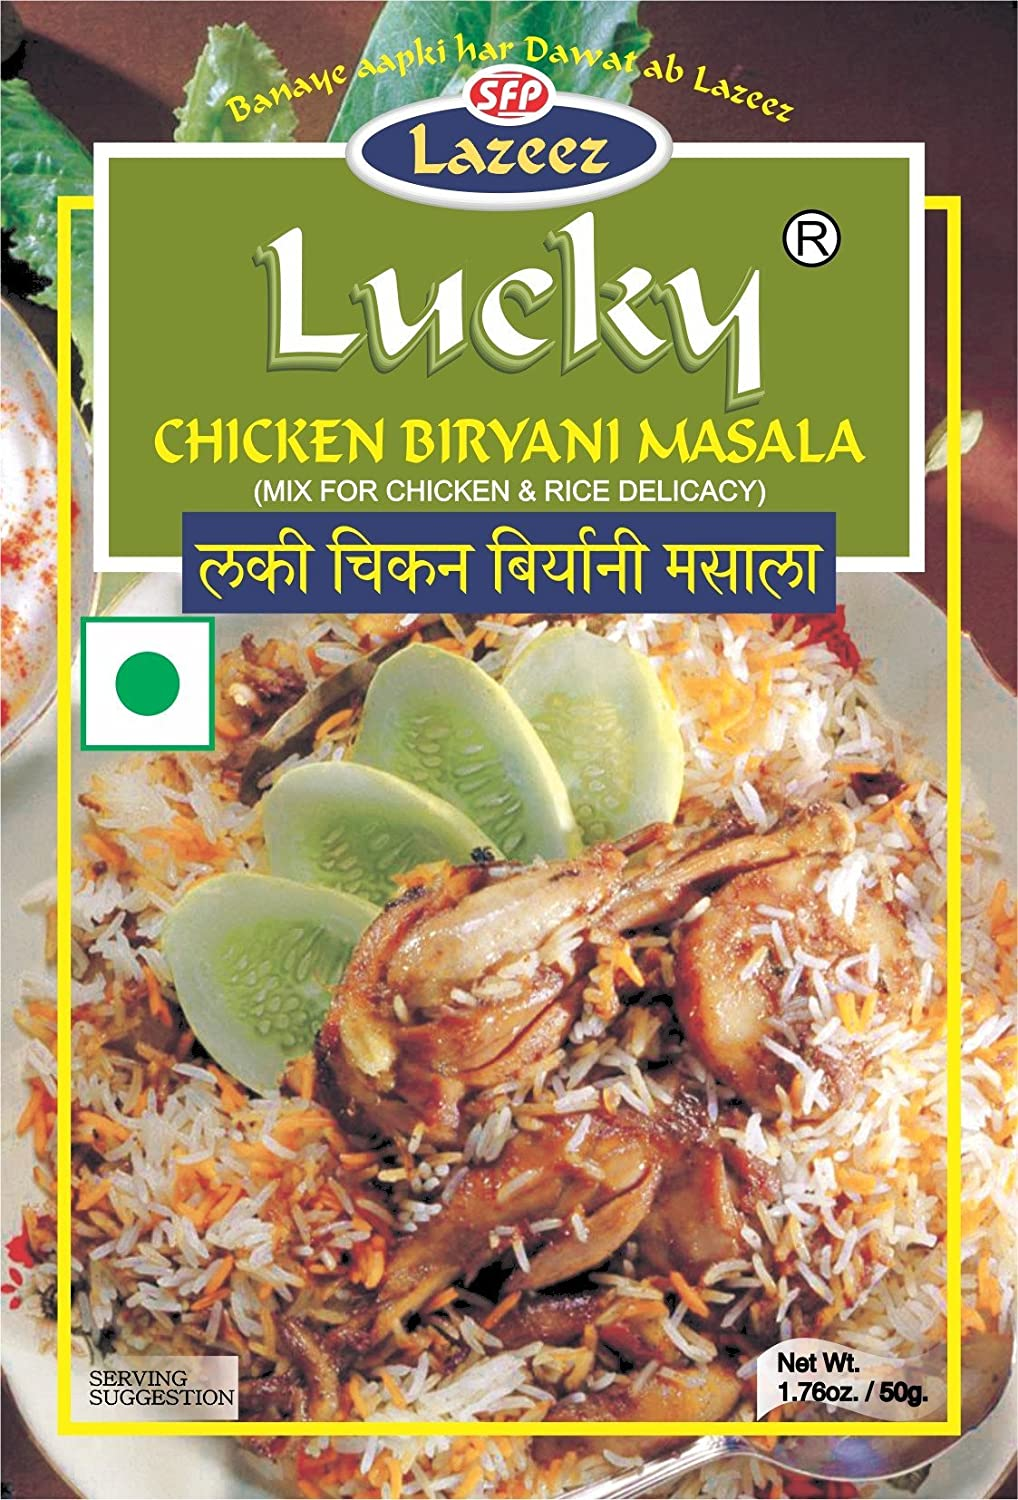 Lucky Masale Chicken Biryani Masala 50G. Pack Of 2: Amazon.in: Grocery &  Gourmet Foods